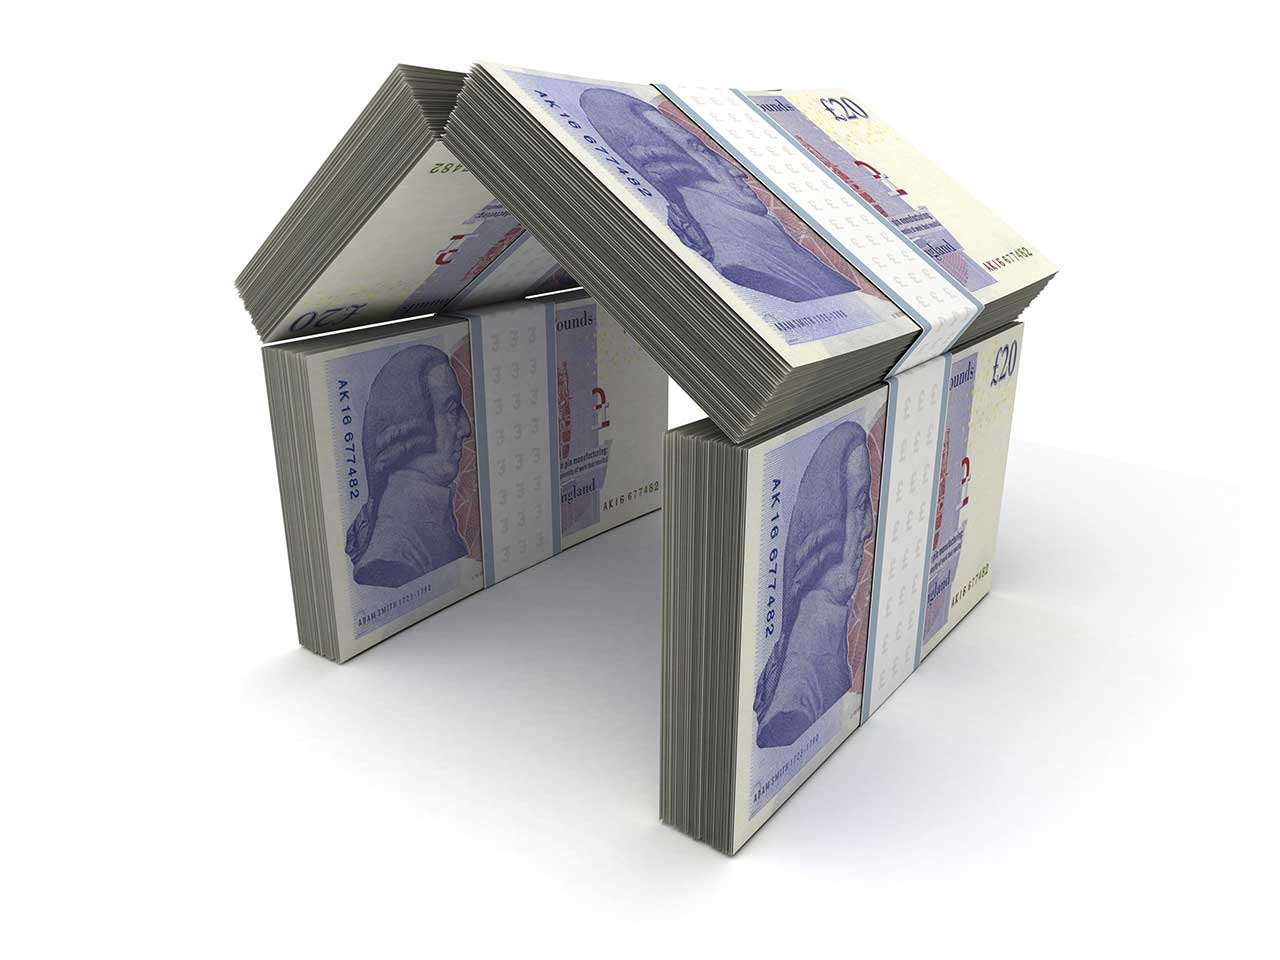 House built out of twenty pound notes